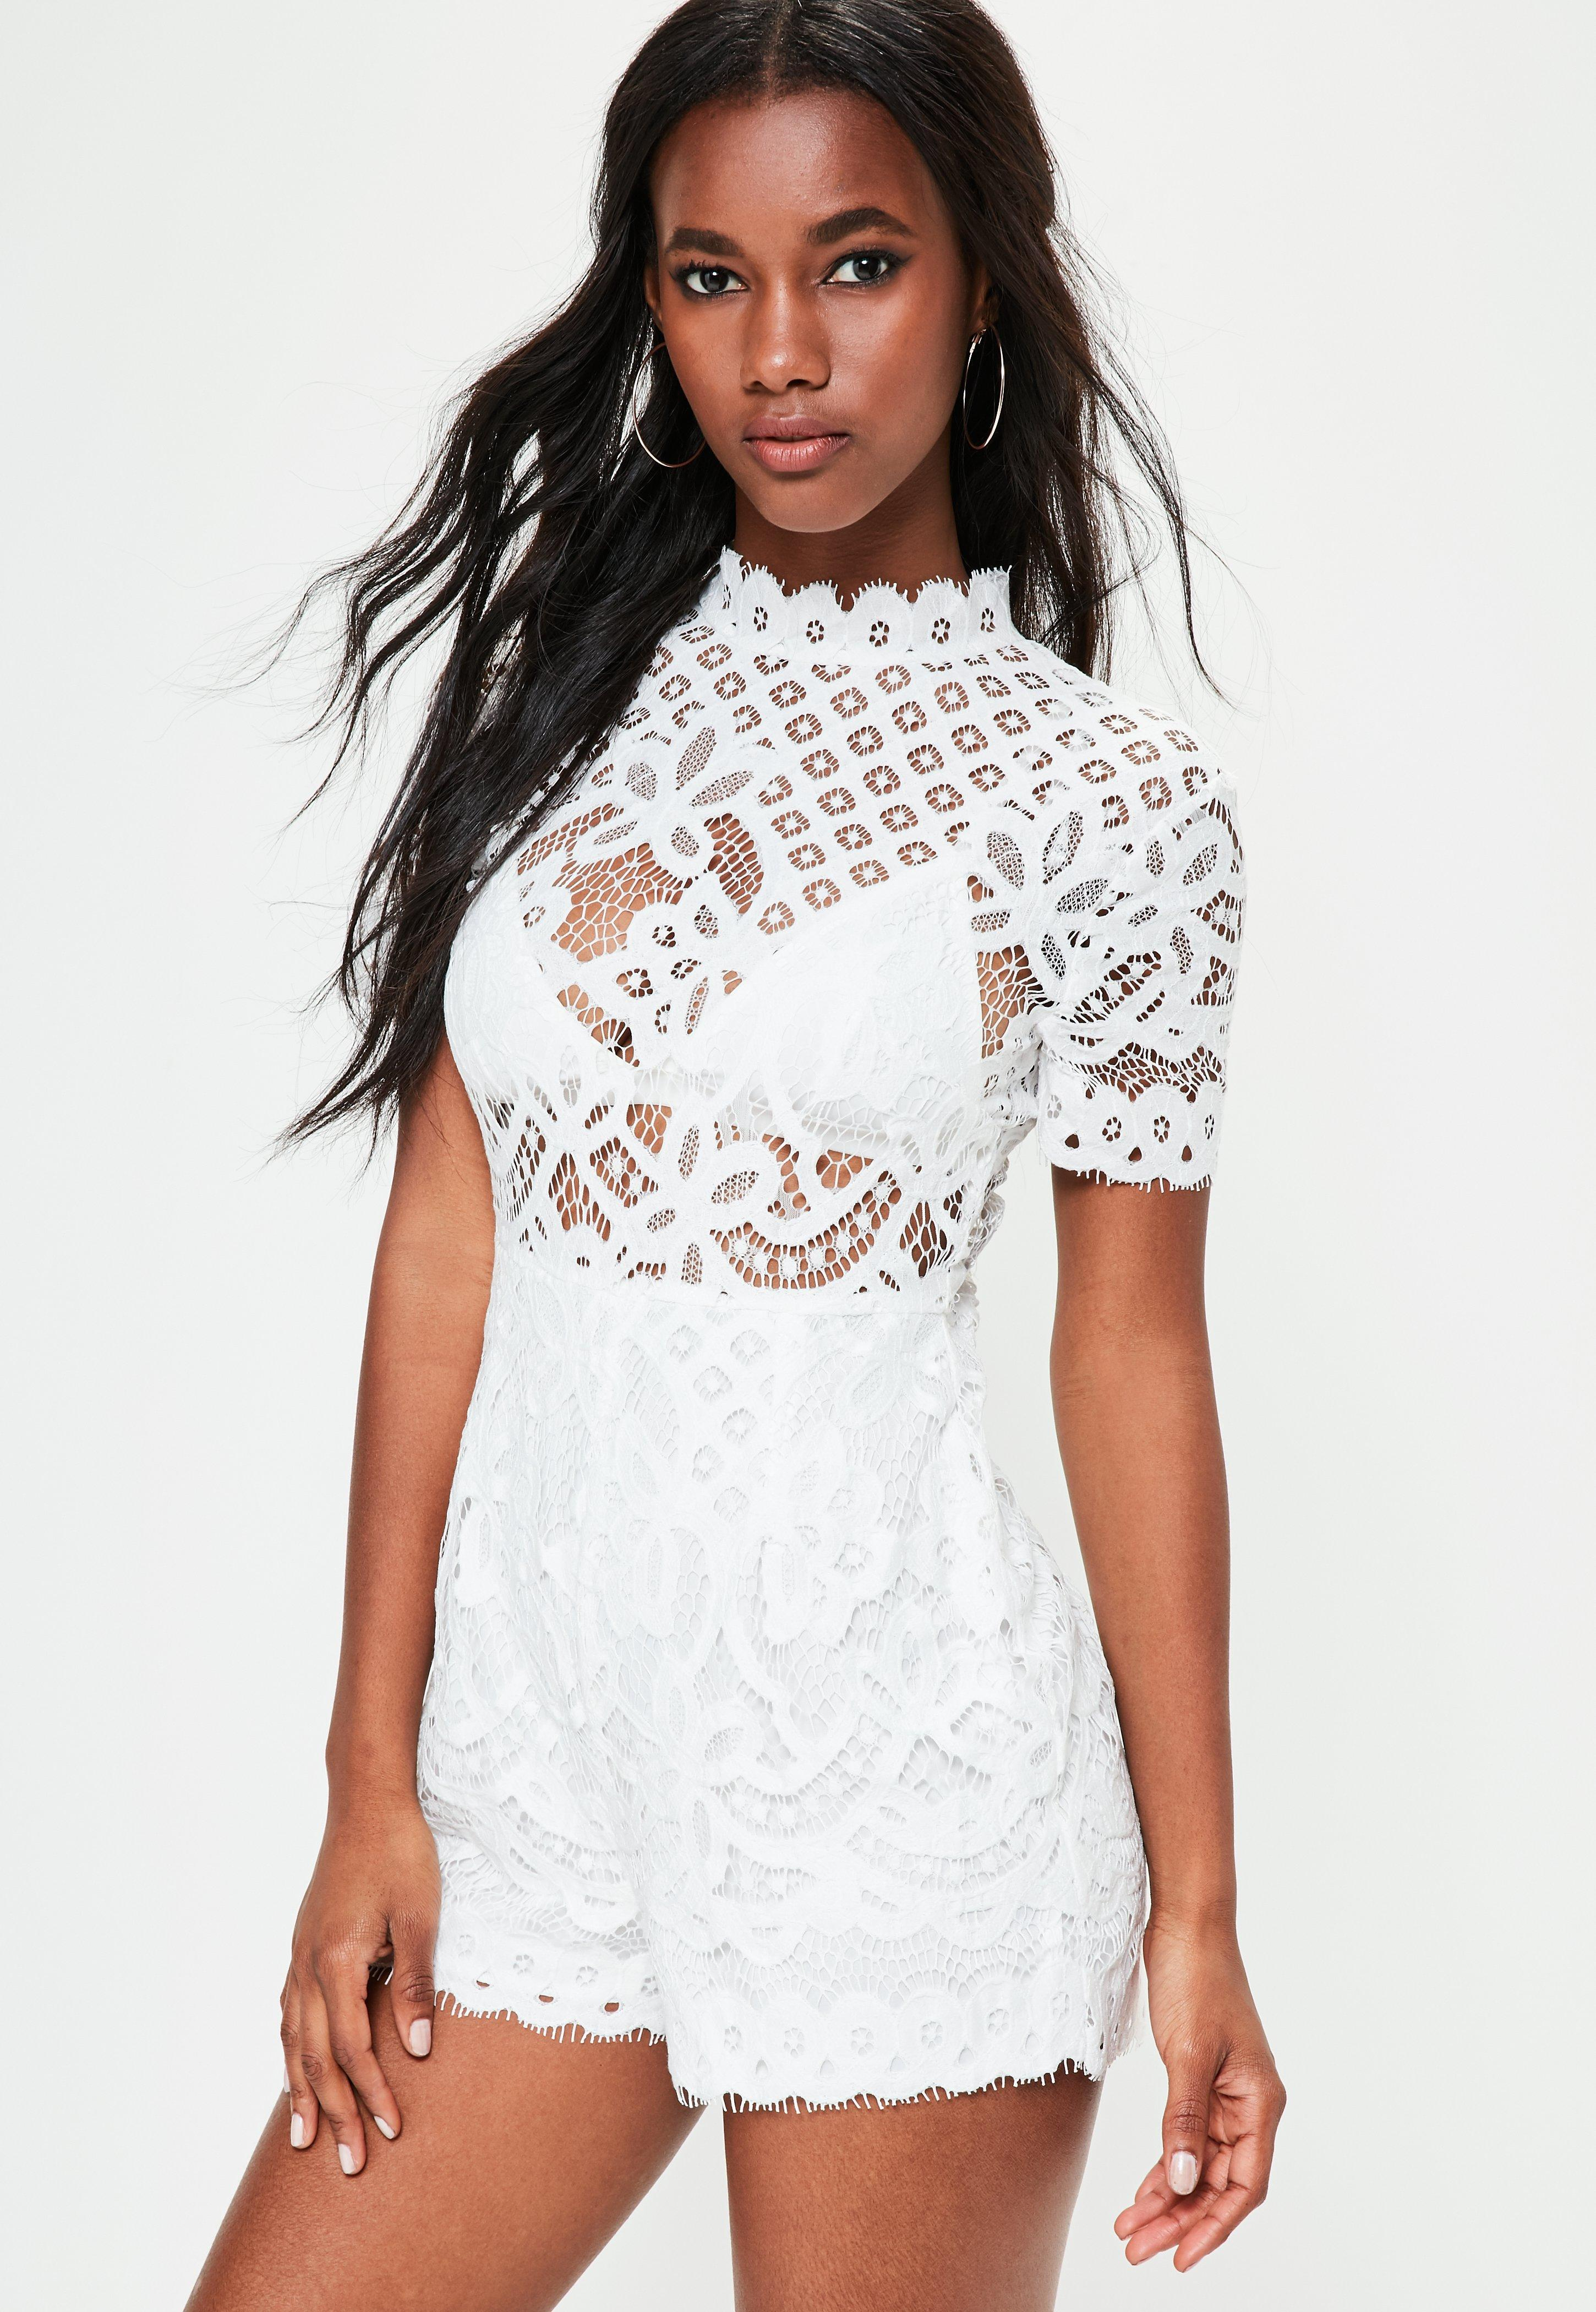 4761126e0d Missguided White High Neck Lace Short Sleeve Playsuit in White - Lyst